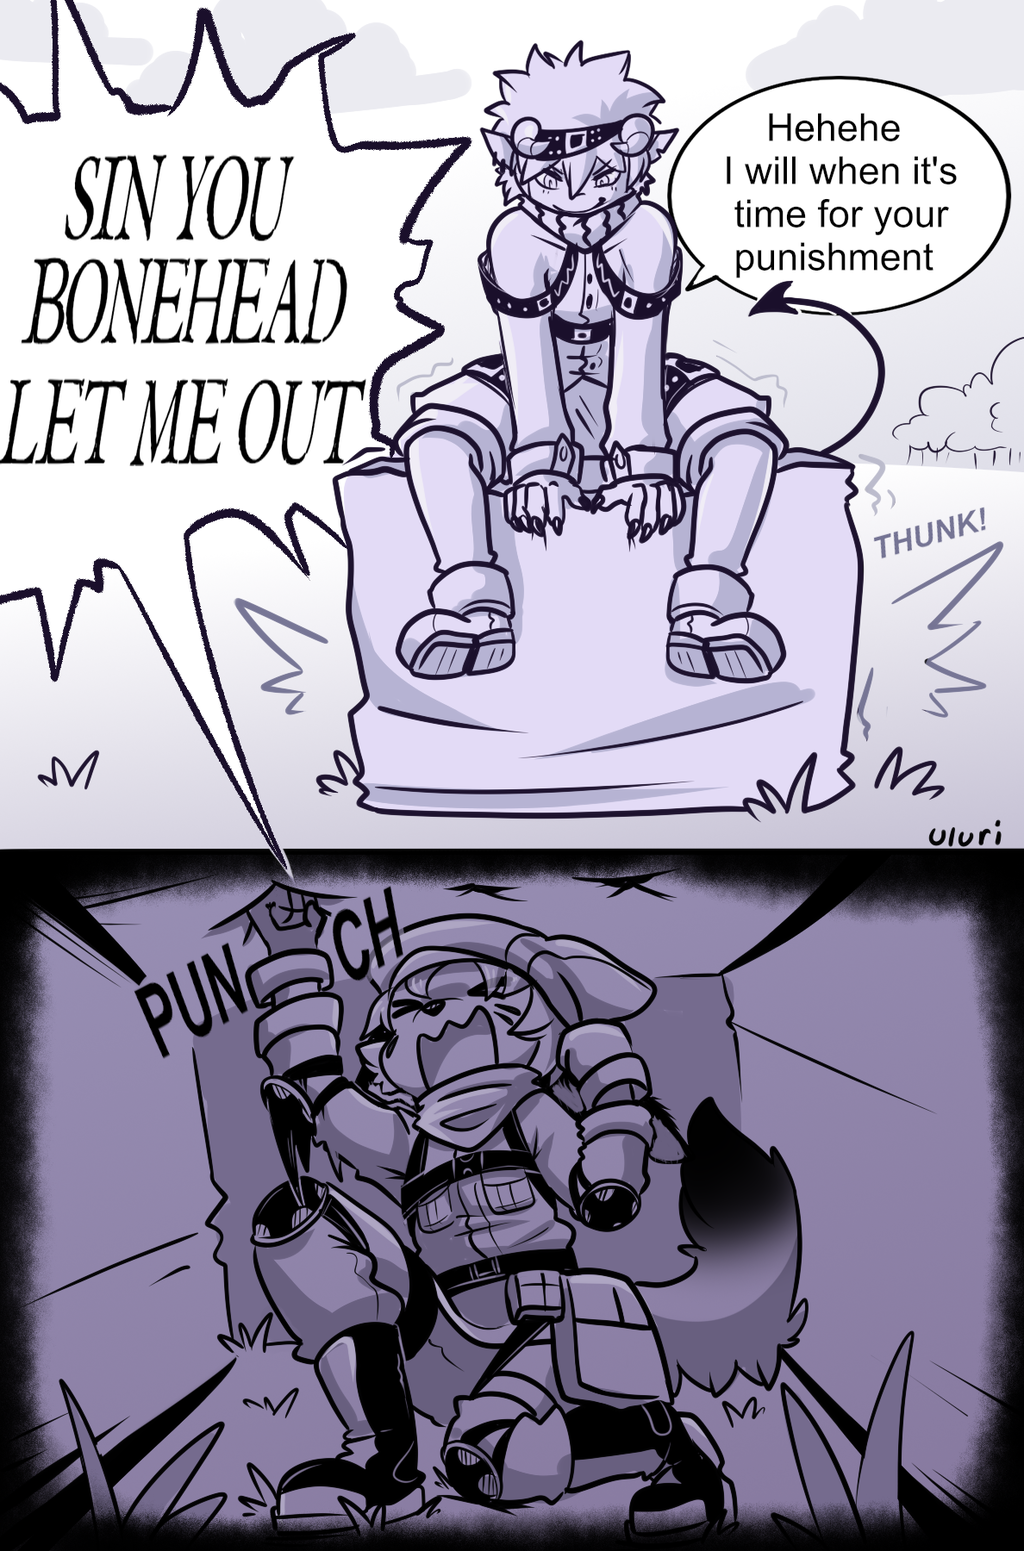 Most recent image: Now What SHould Your Punishment be?